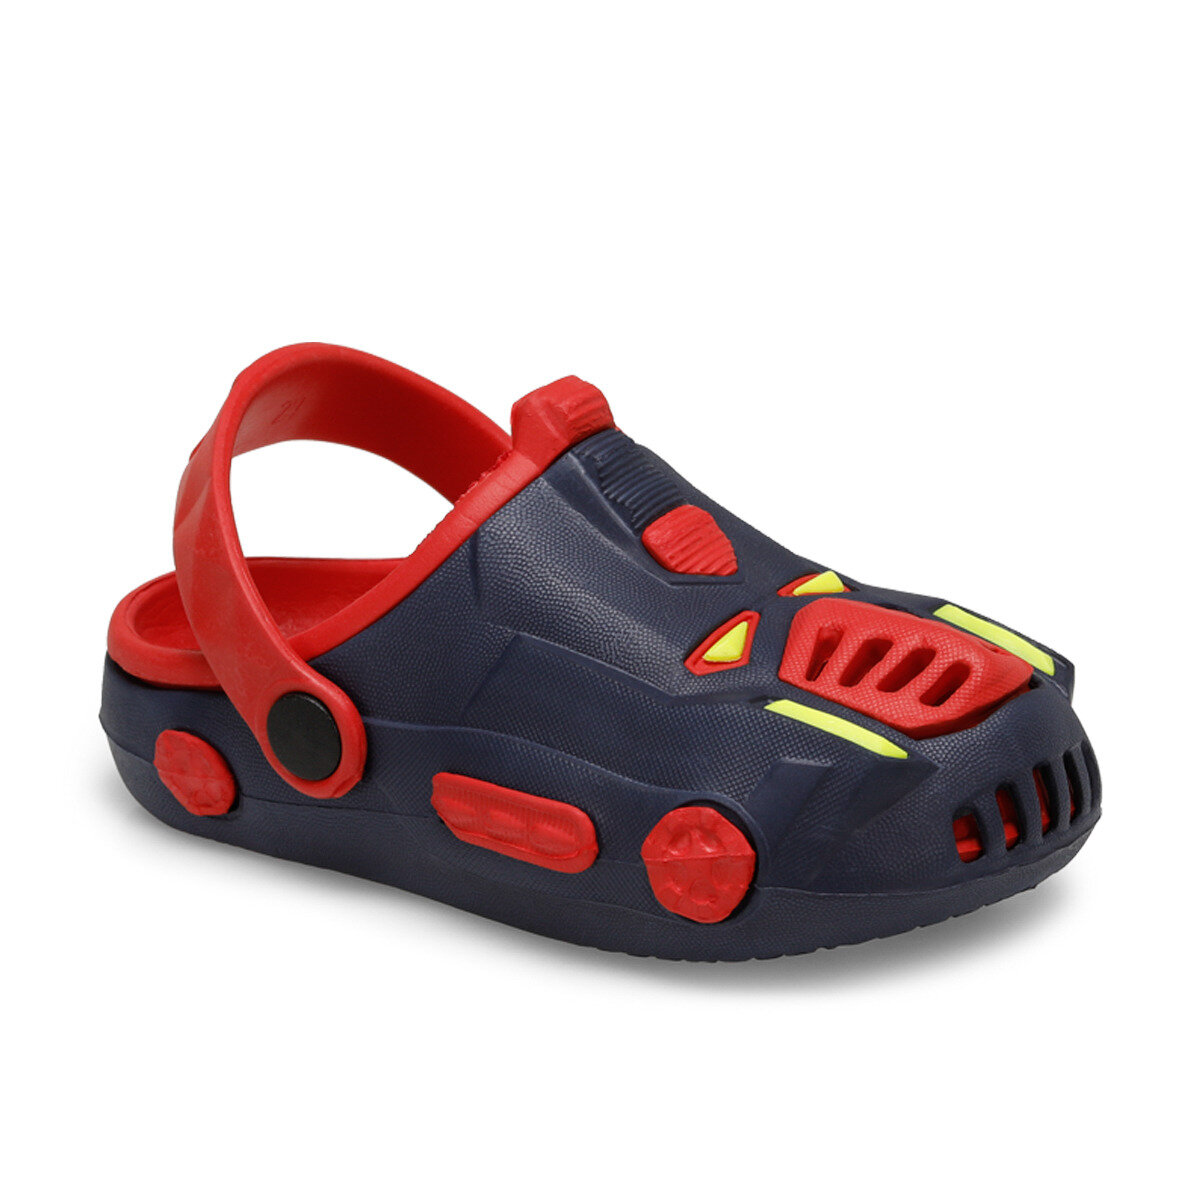 FLO BERGE Red Male Child Sea Shoes KINETIX